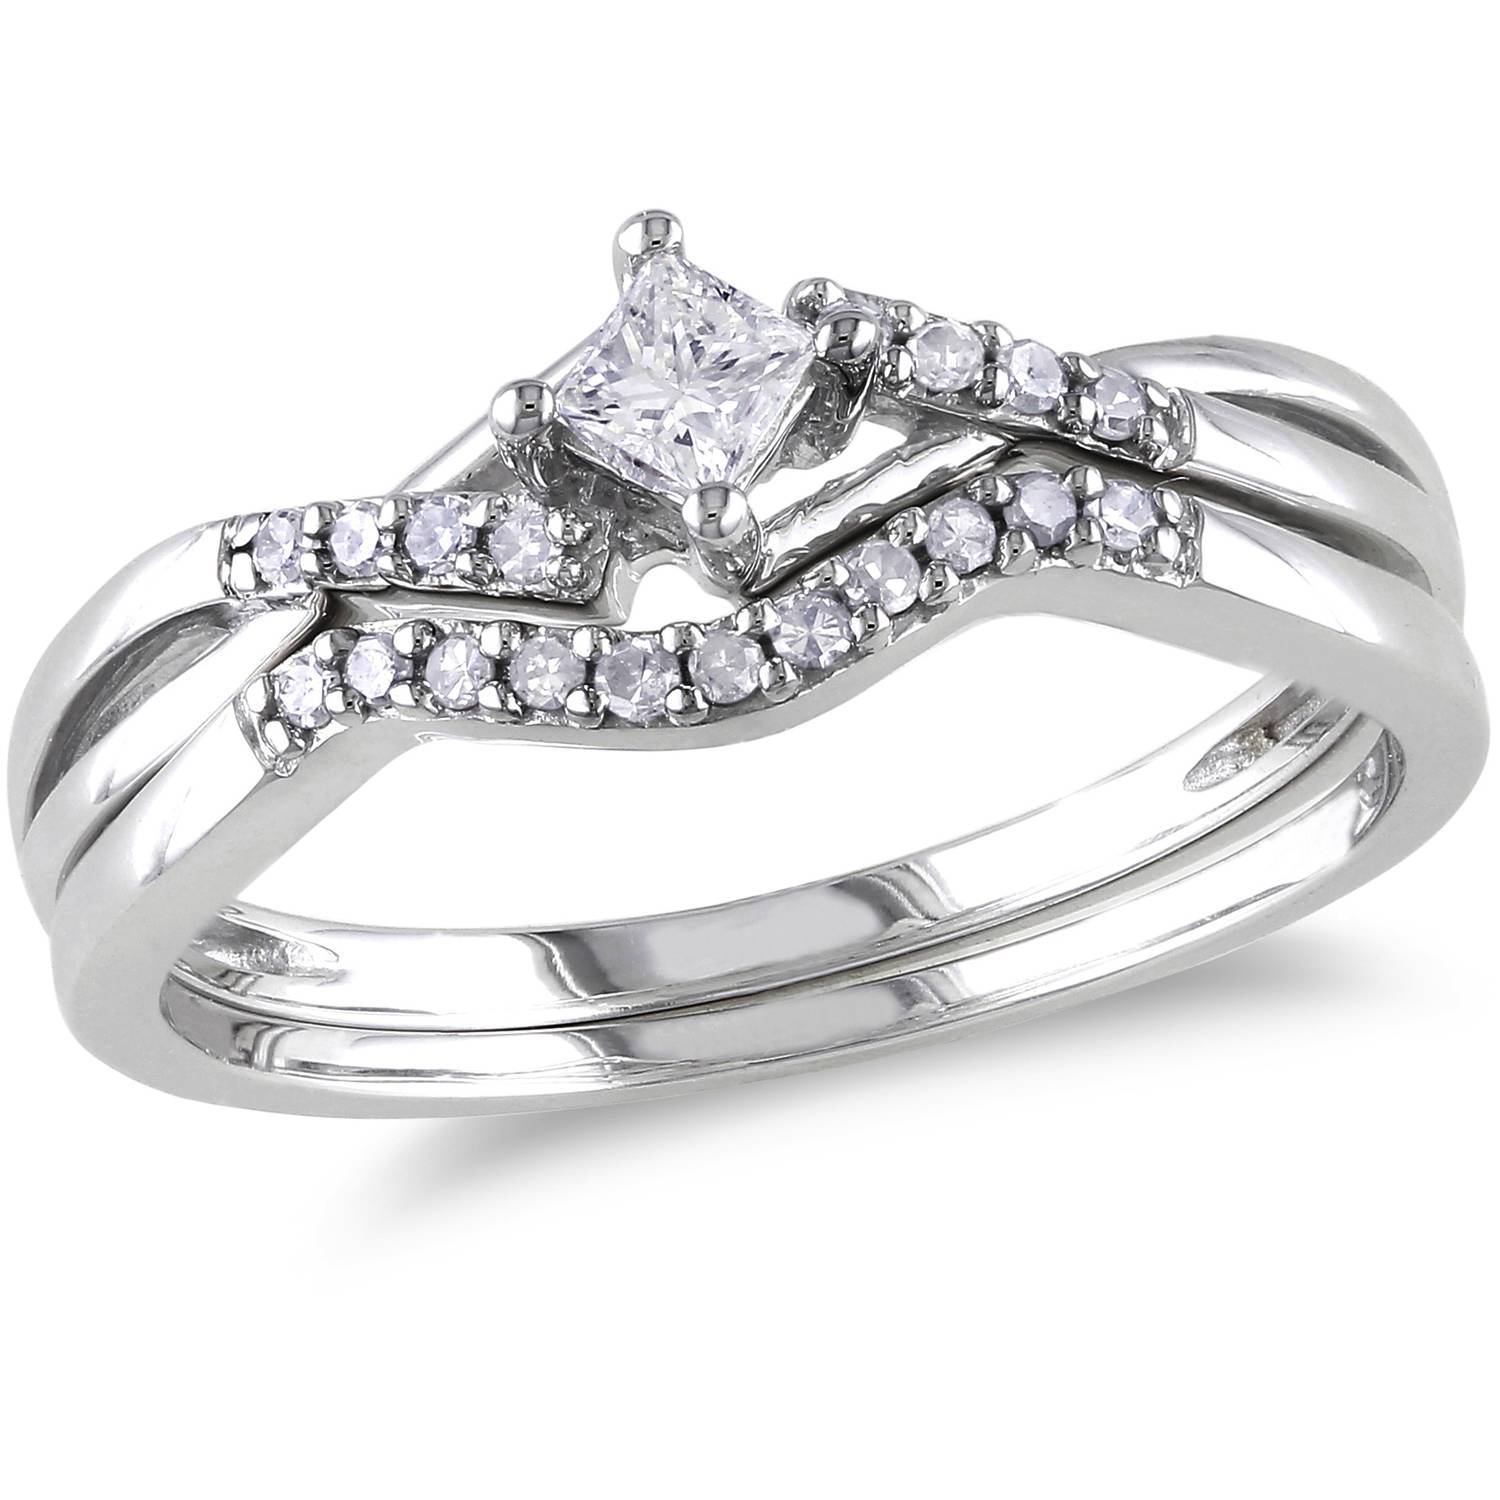 Miabella 1 5 Carat T.W. Princess and Round-Cut Diamond Sterling Silver Cross-Over Bridal Set by Generic